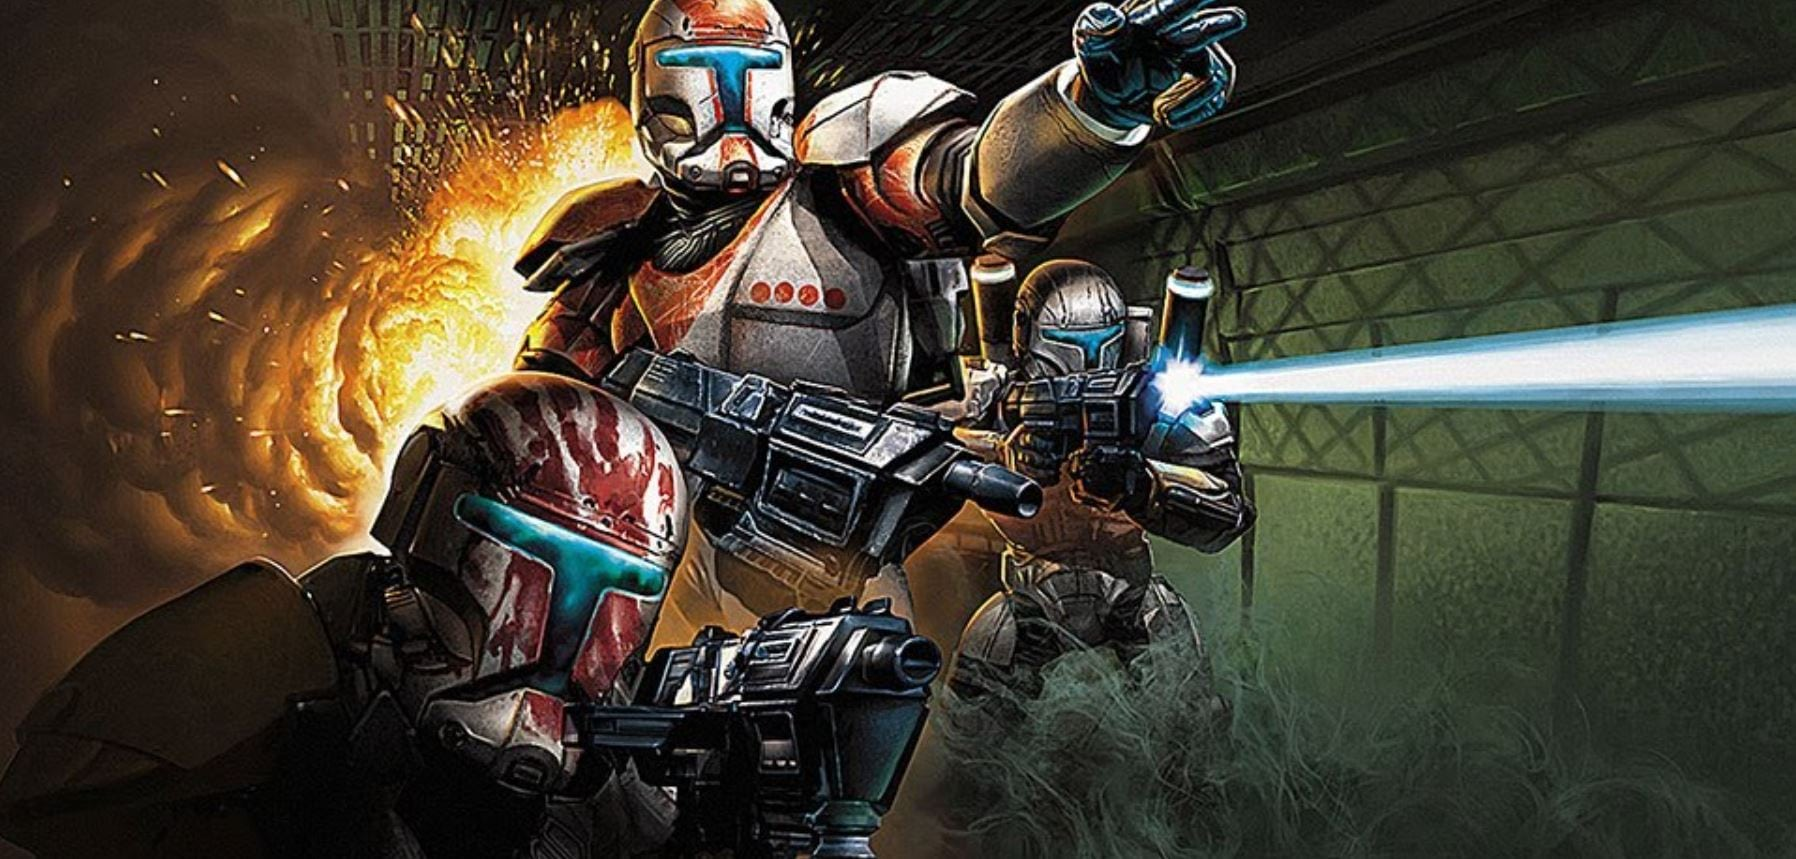 Star Wars: Republic Commando releases on Switch and PS4 today - Gayming  Magazine